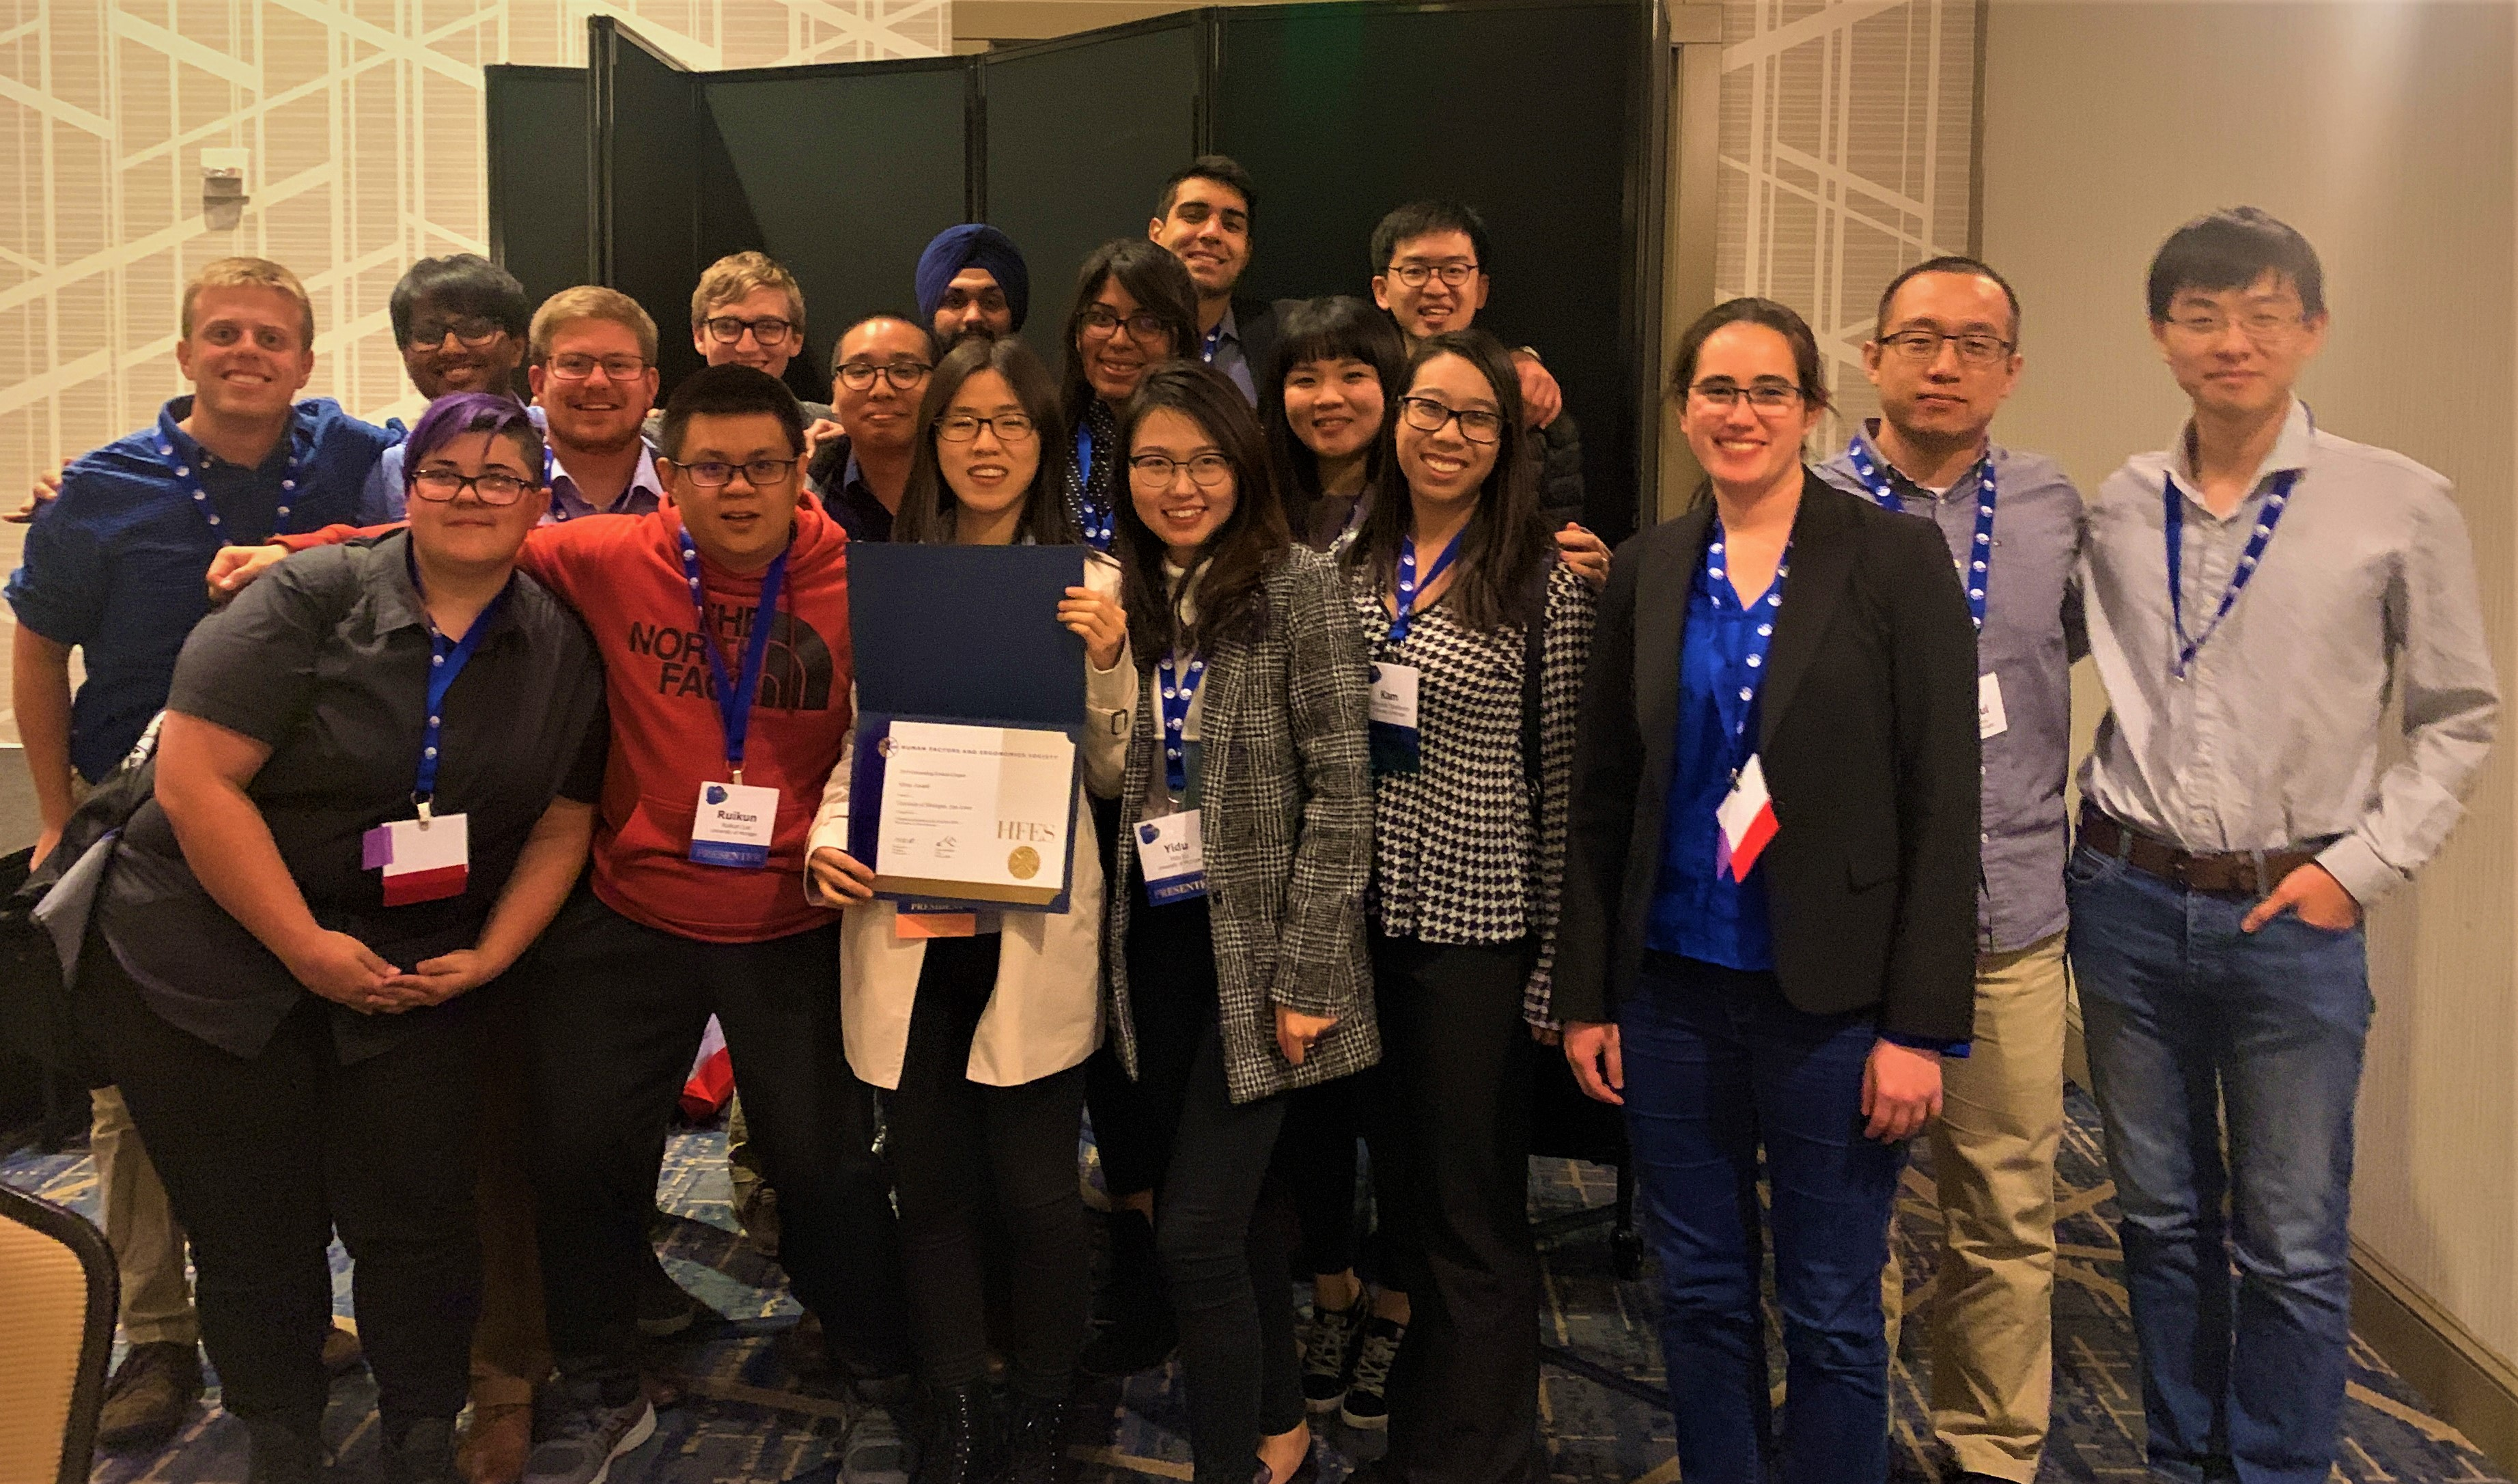 U-M HFES Student Chapter group photo at the HFES annual meeting in Seattle.